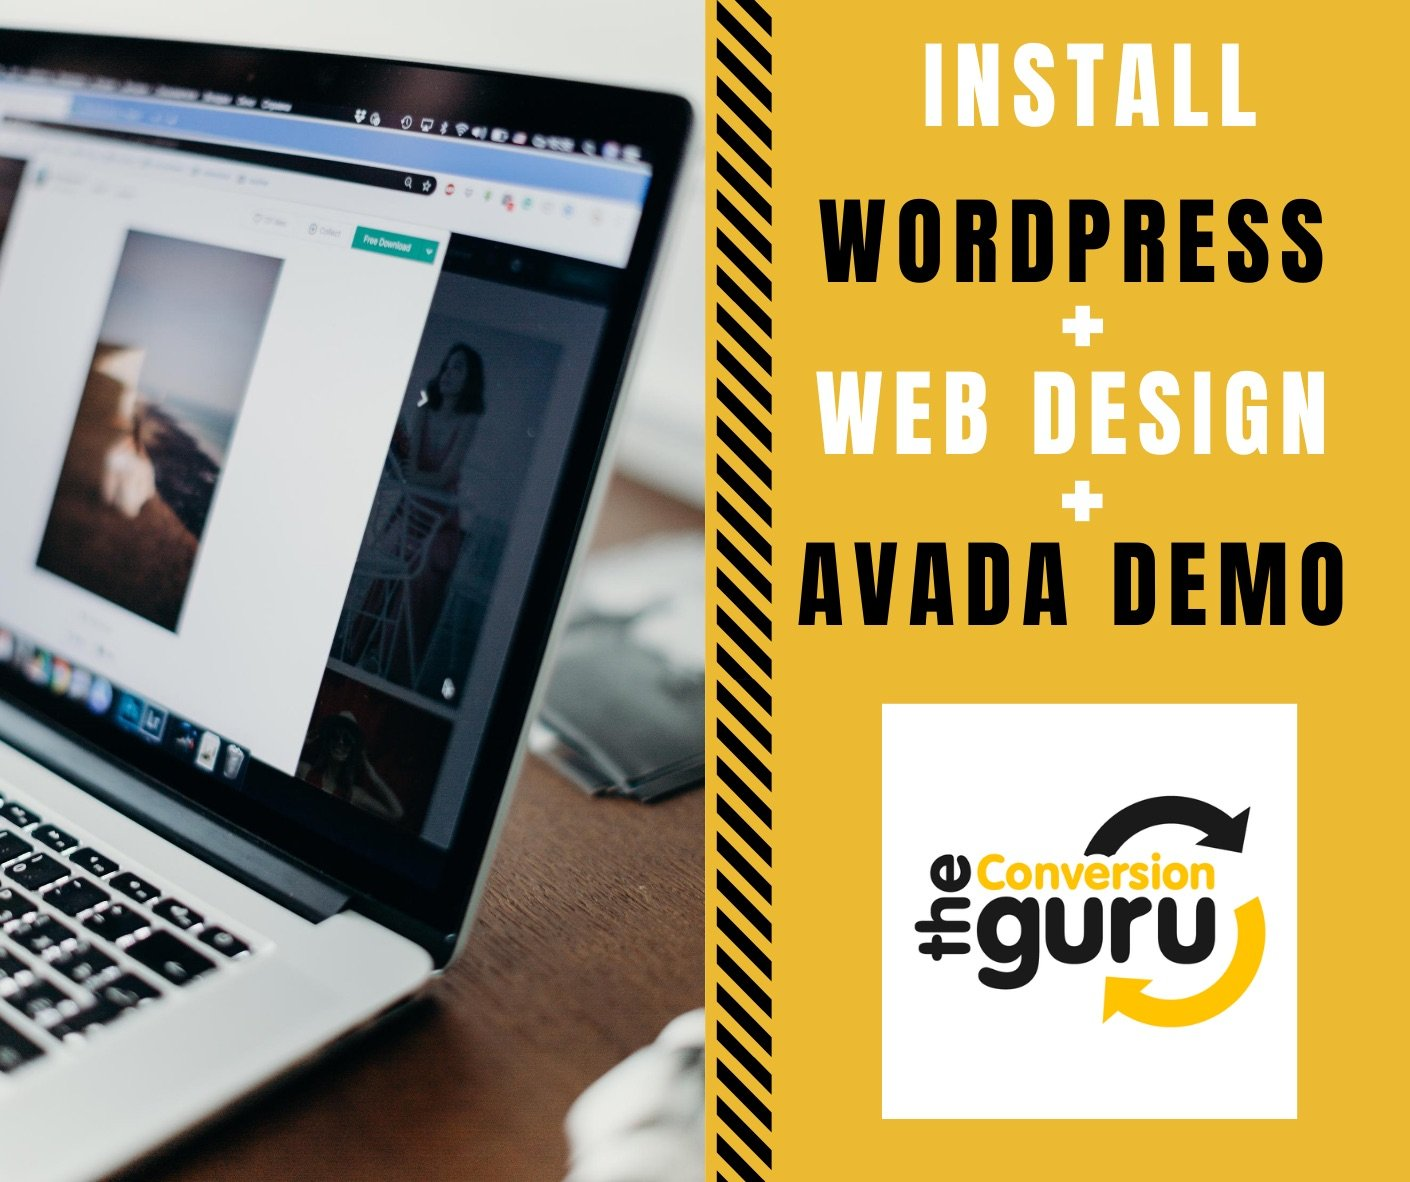 install wordpress web design avada demo installation